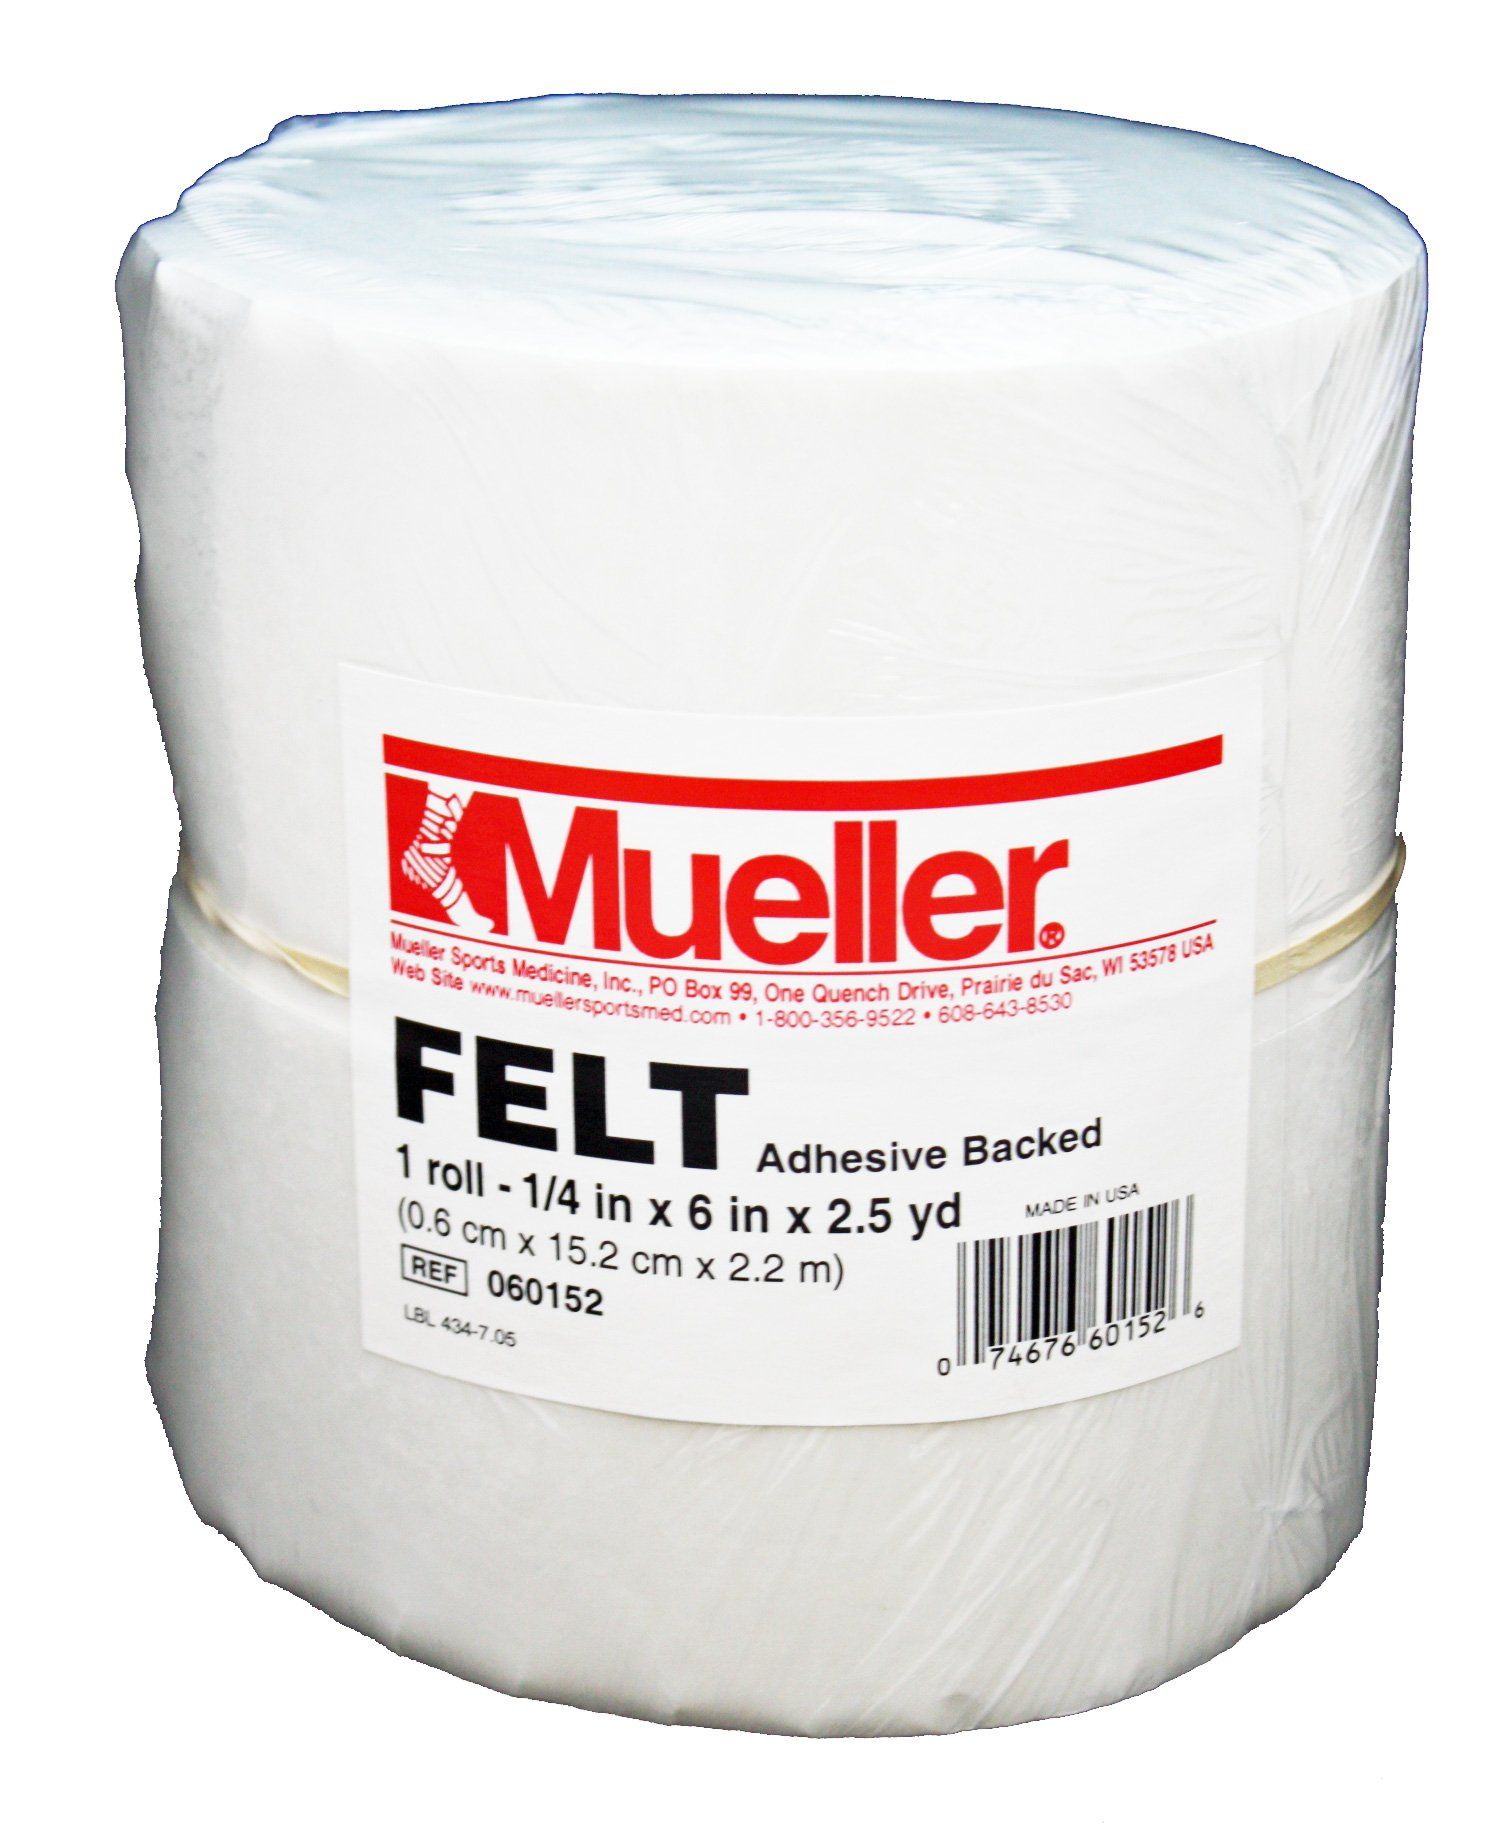 Mueller Orthopedic Felt - Adhesive backed - 1/4'' x 6'' x 2.5 yd roll by Mueller